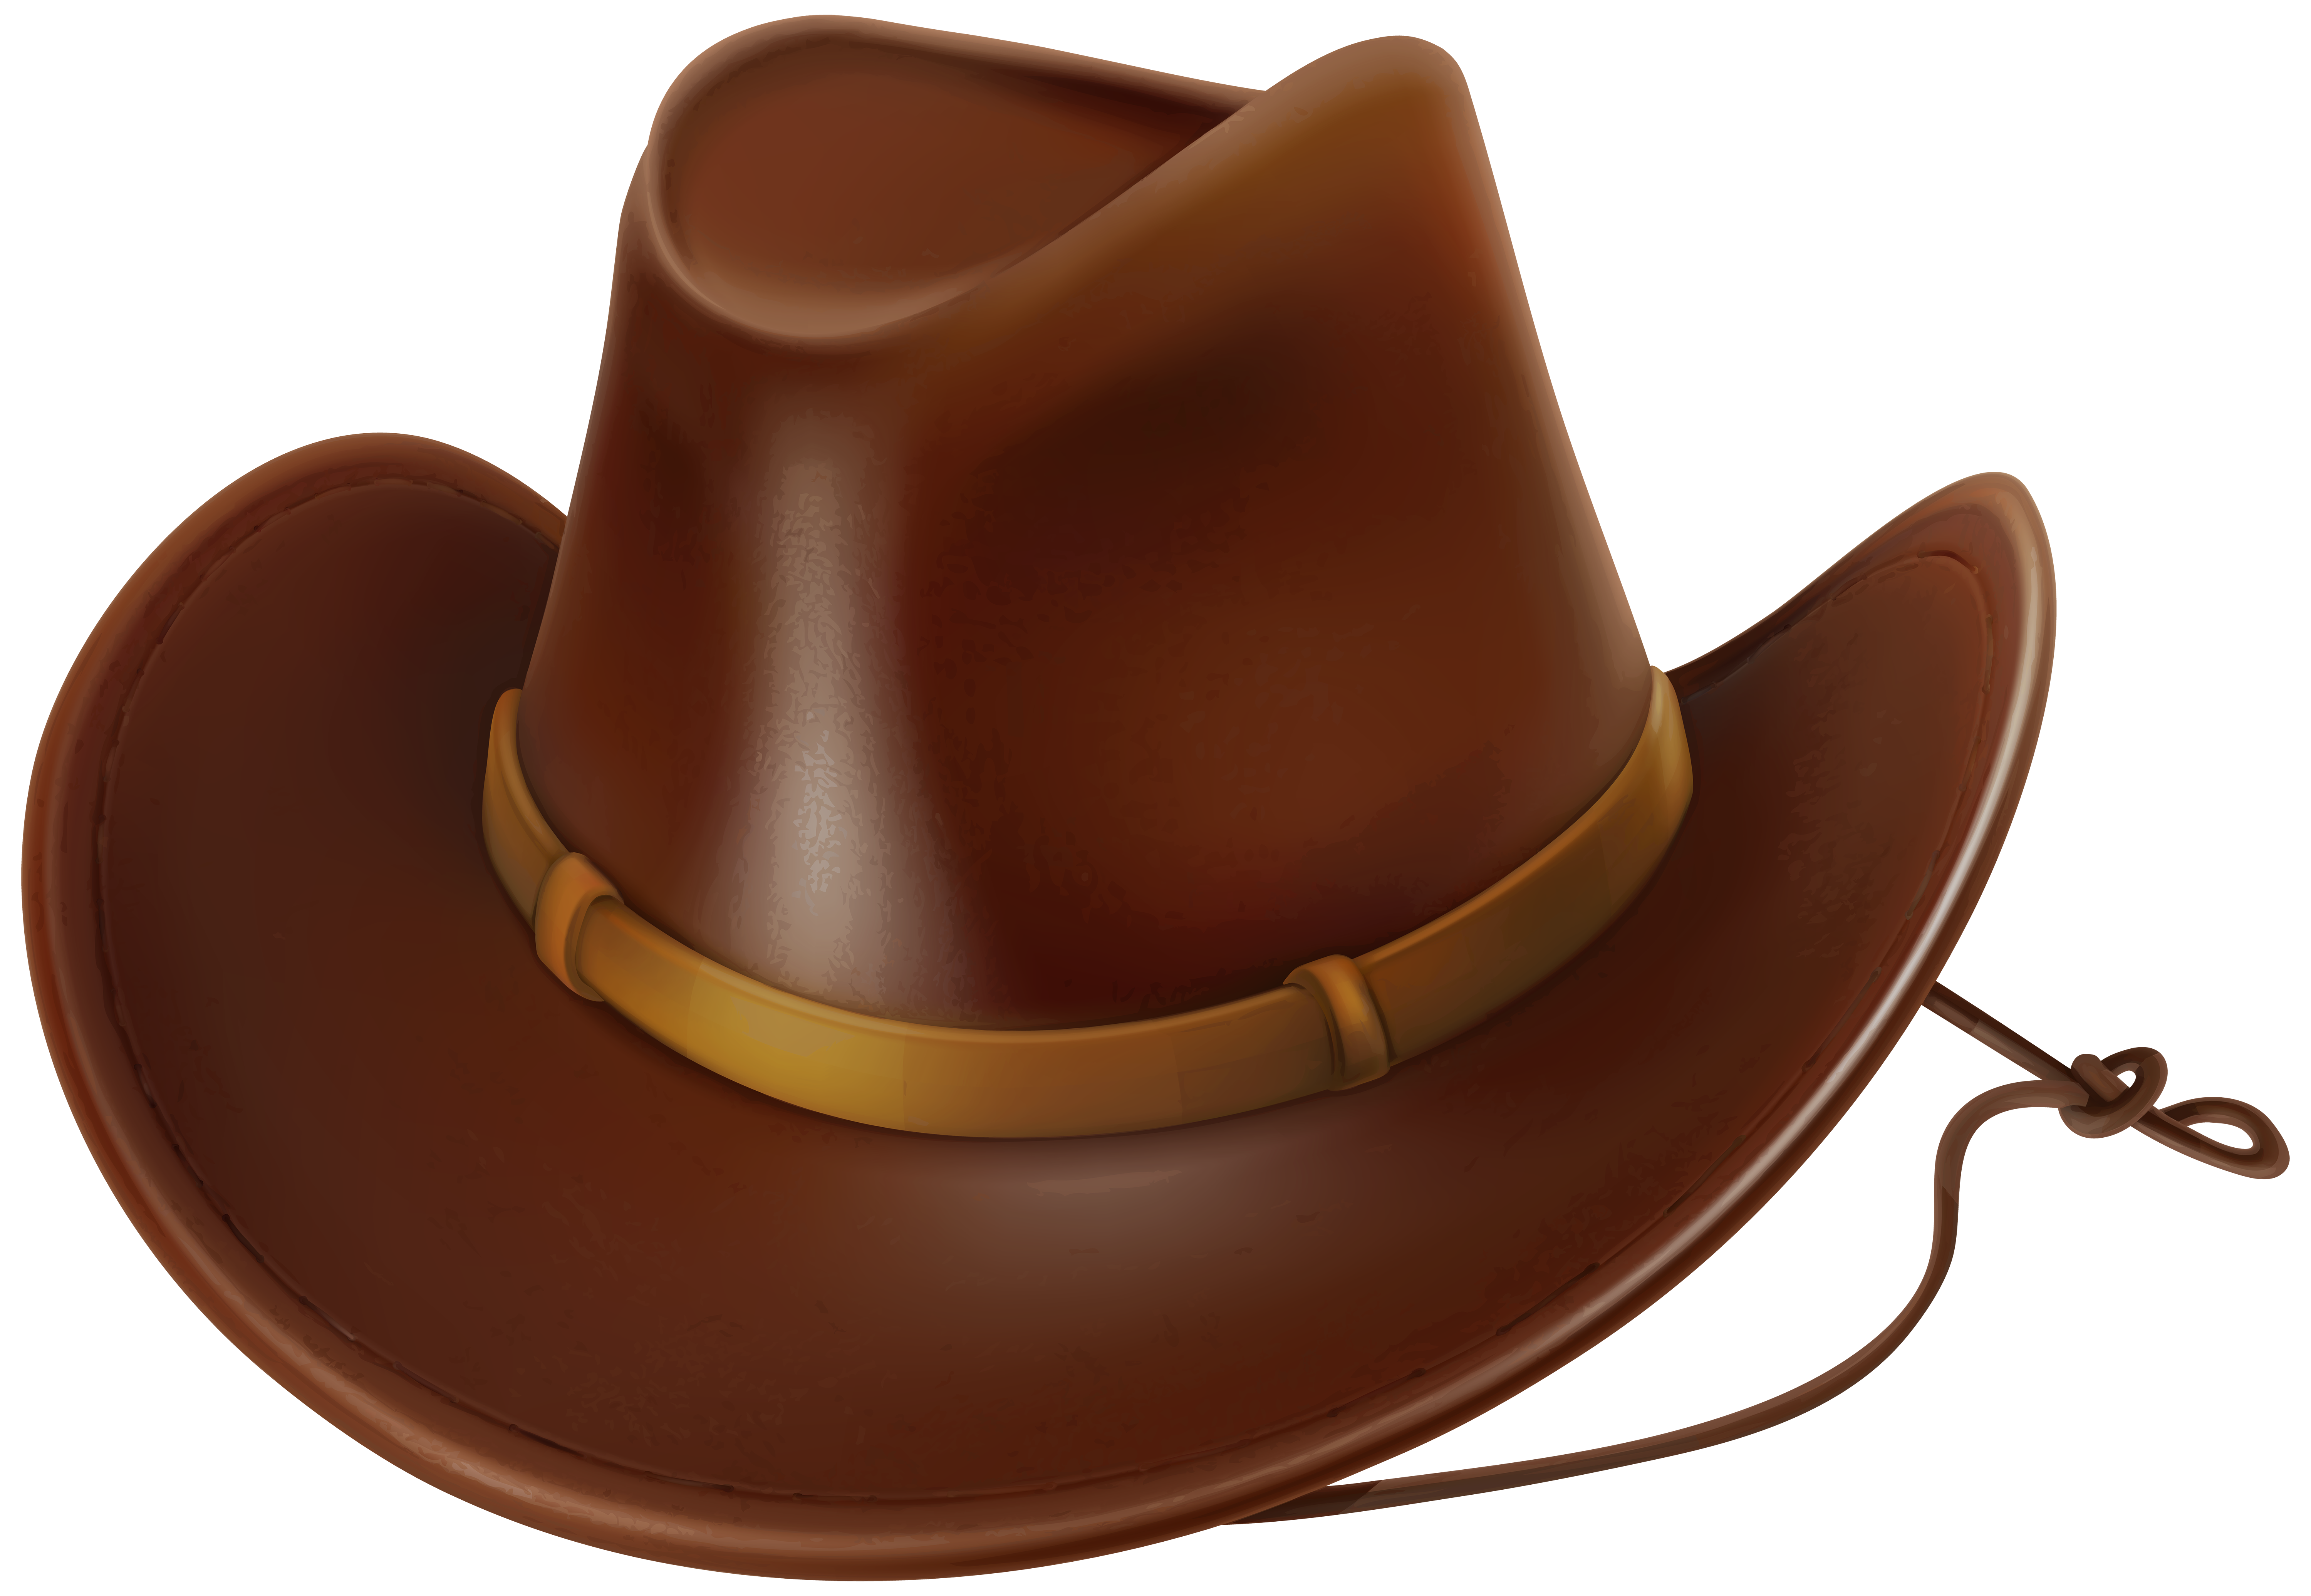 Fedora clipart red cowboy hat. Png clip art image